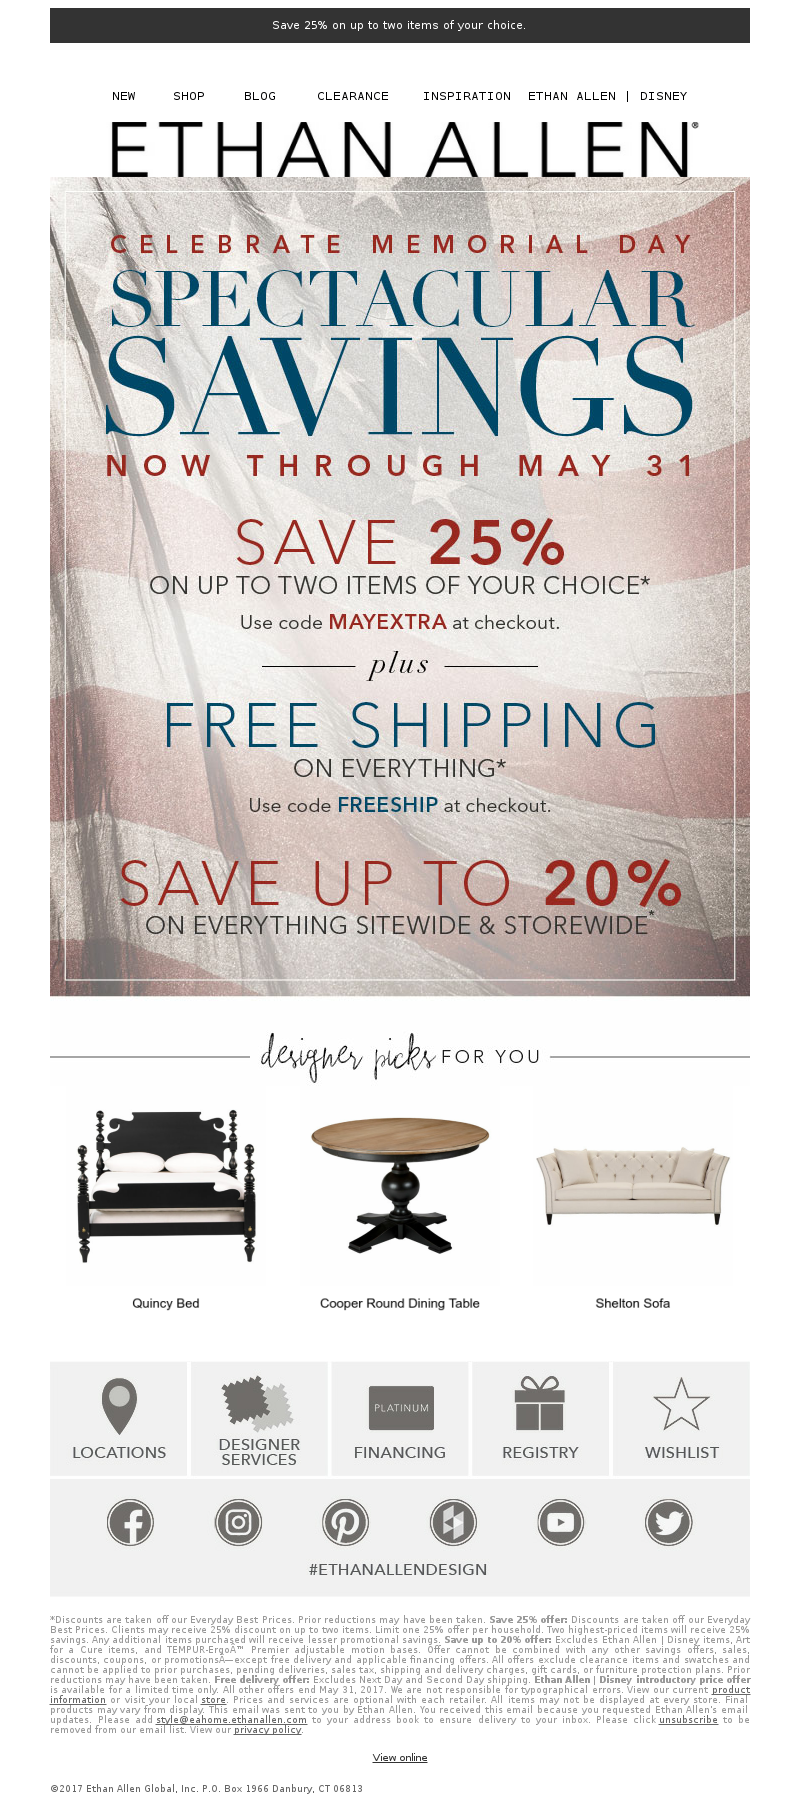 Save 25% on up to two items of your choice. NEW SHOP BLOG CLEARANCE INSPIRA